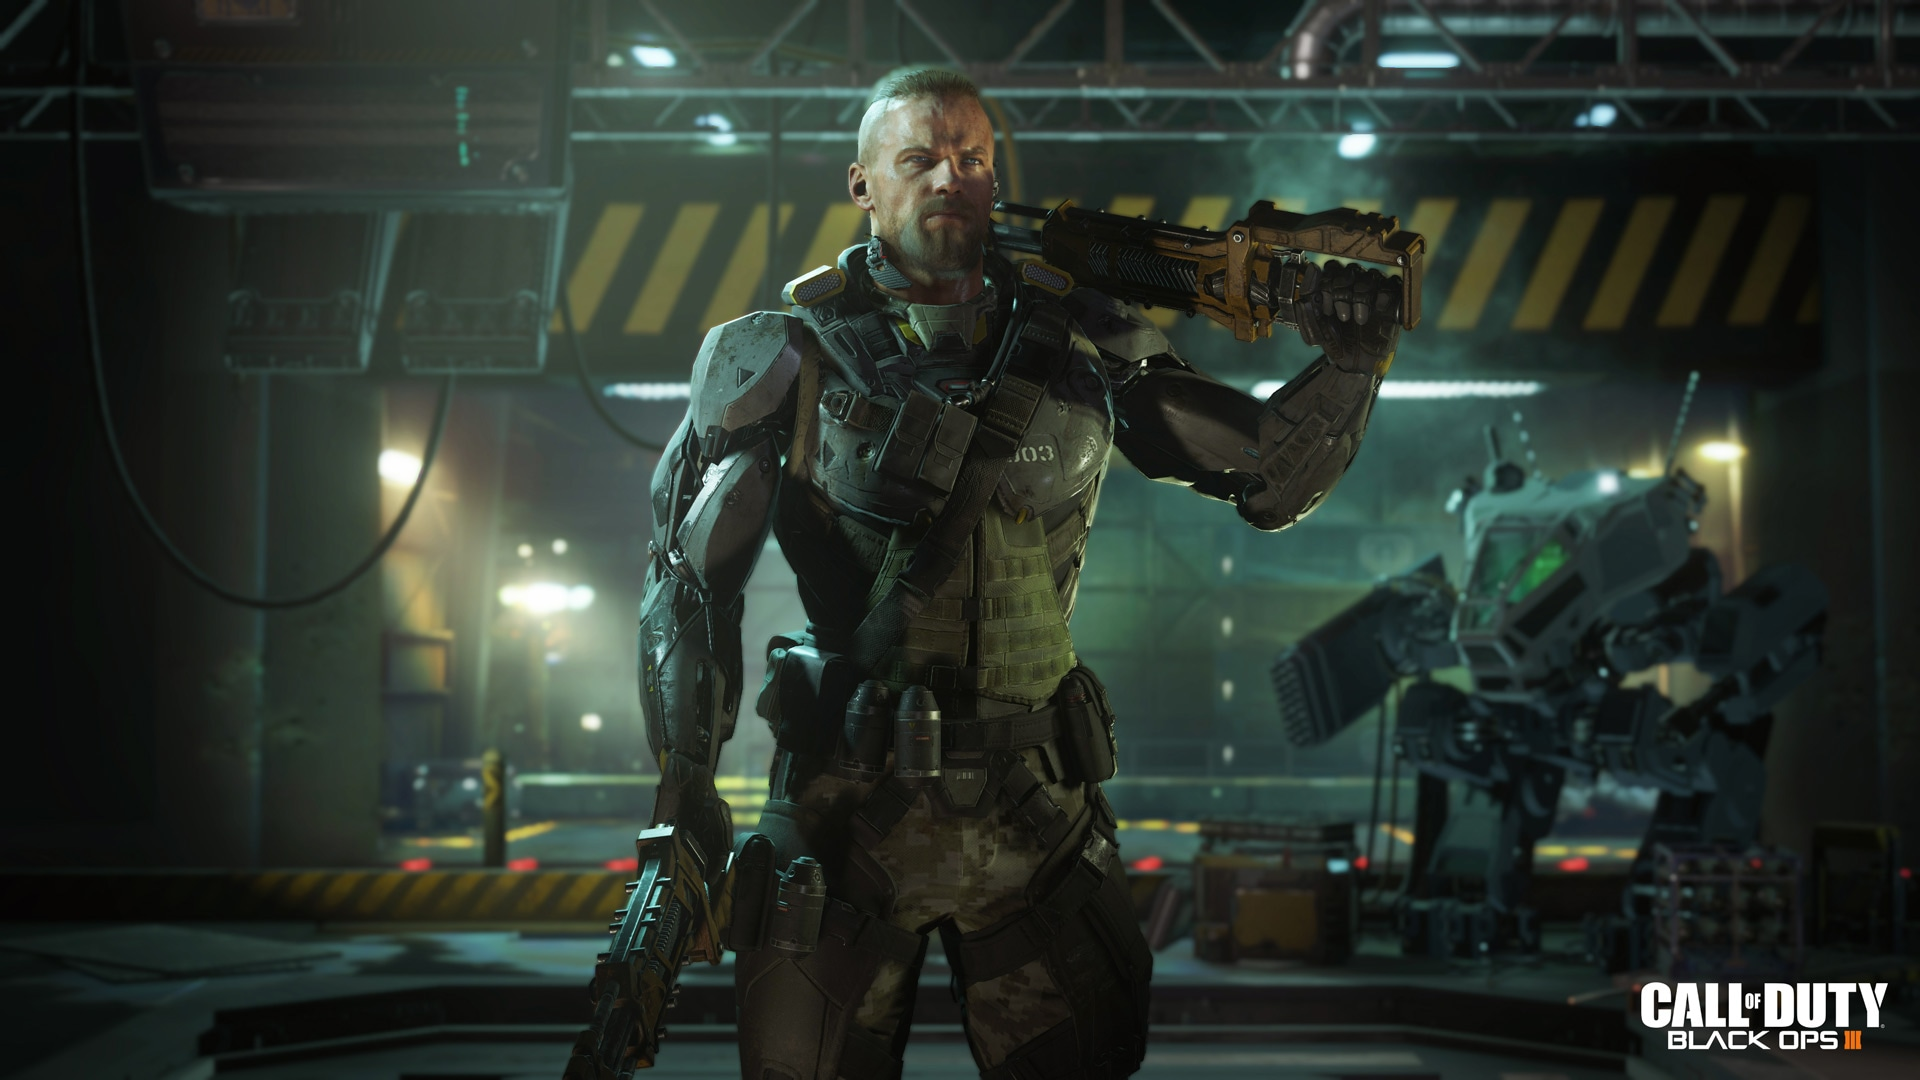 """Black Ops III"" Will Have Modding/Mapping Tools for PC 2016 - Oh, What Glorious Ways to Mod CoD"